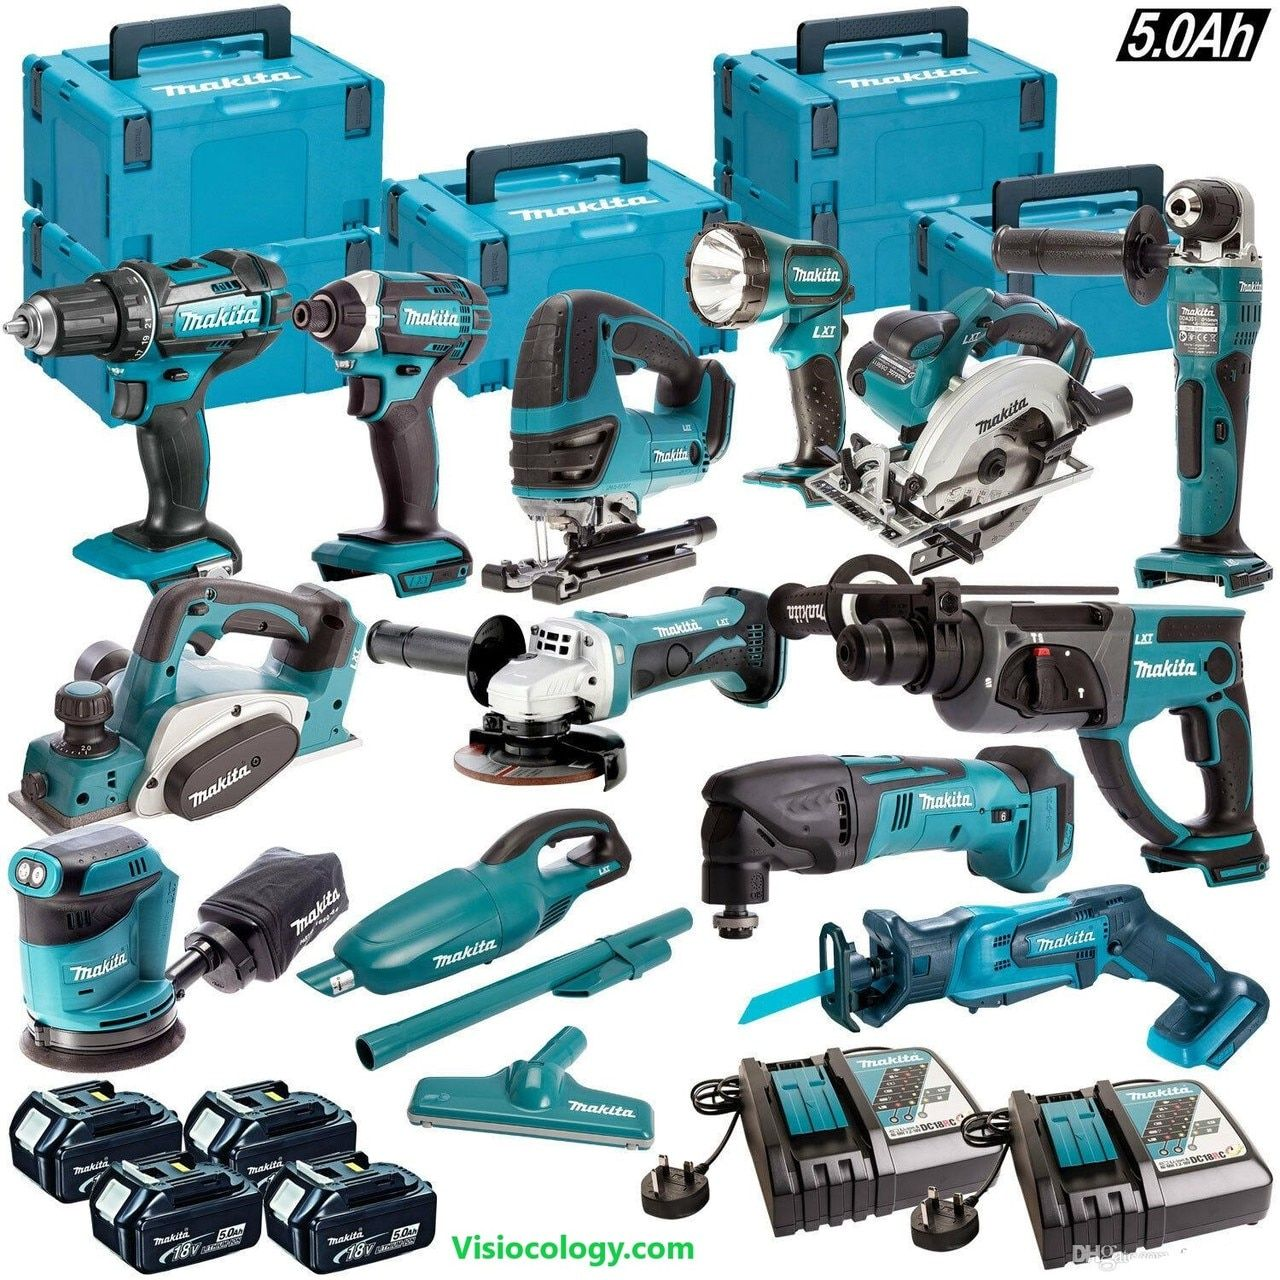 13pcs Makita 18v Lxt Cordless Monster Power Tools Combo Kit With 4 X 5 0ah Batteries Charger Case Visiocology Com Online Combo Kit Power Tools Makita